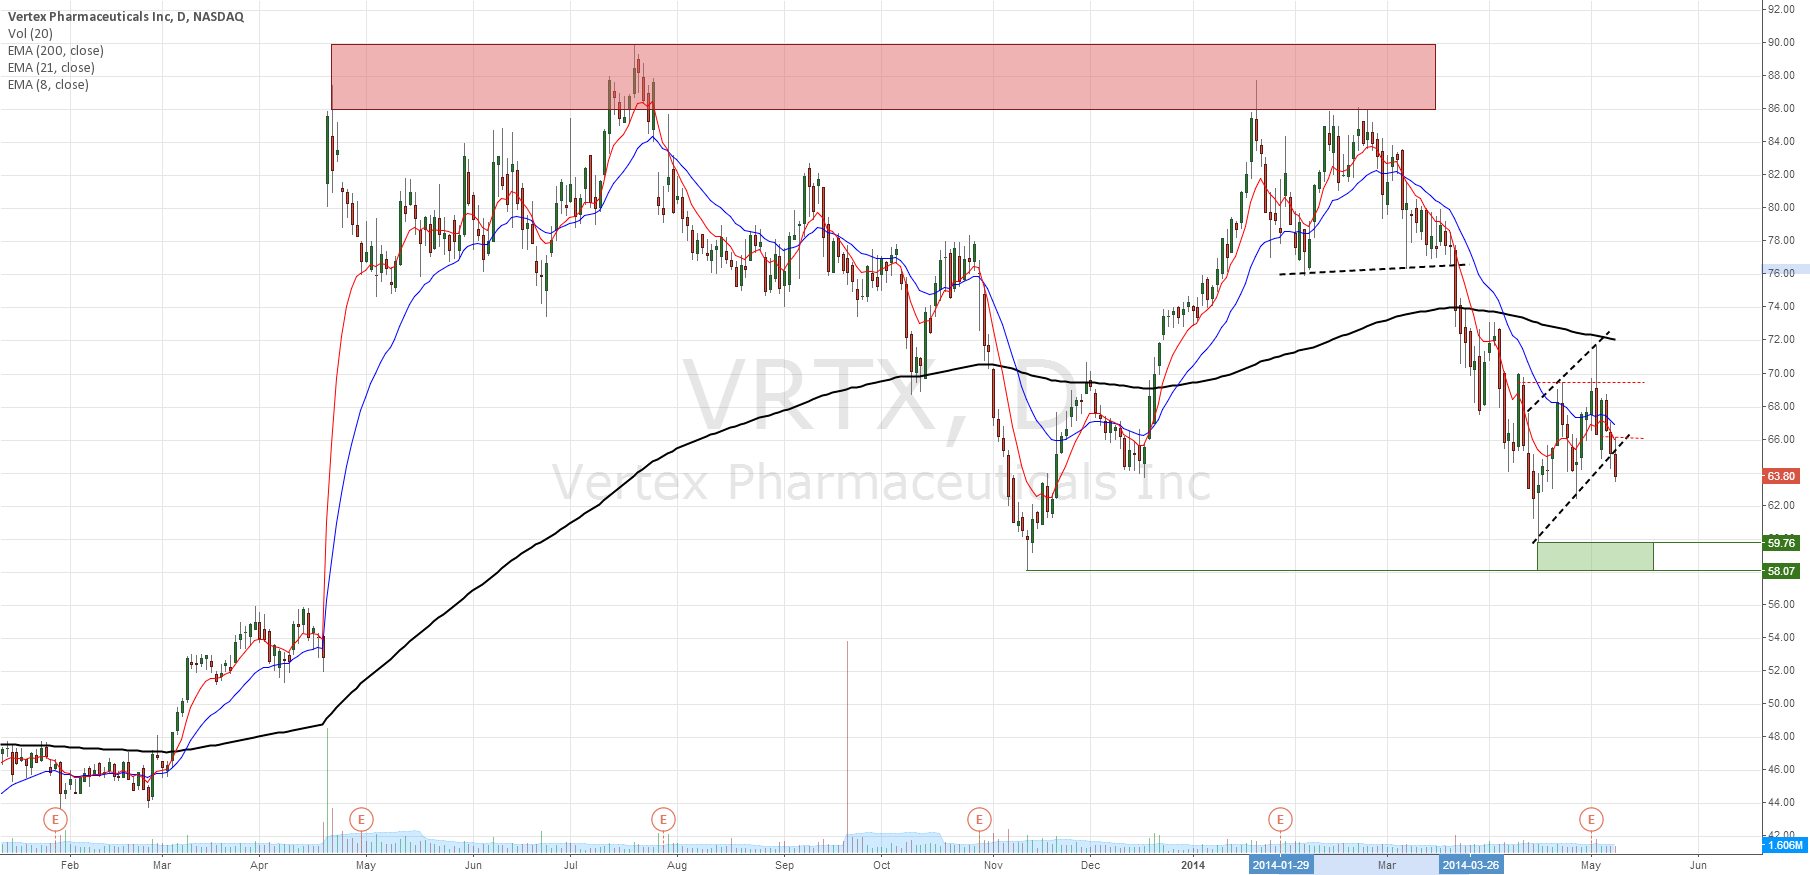 VRTX setting for move lower